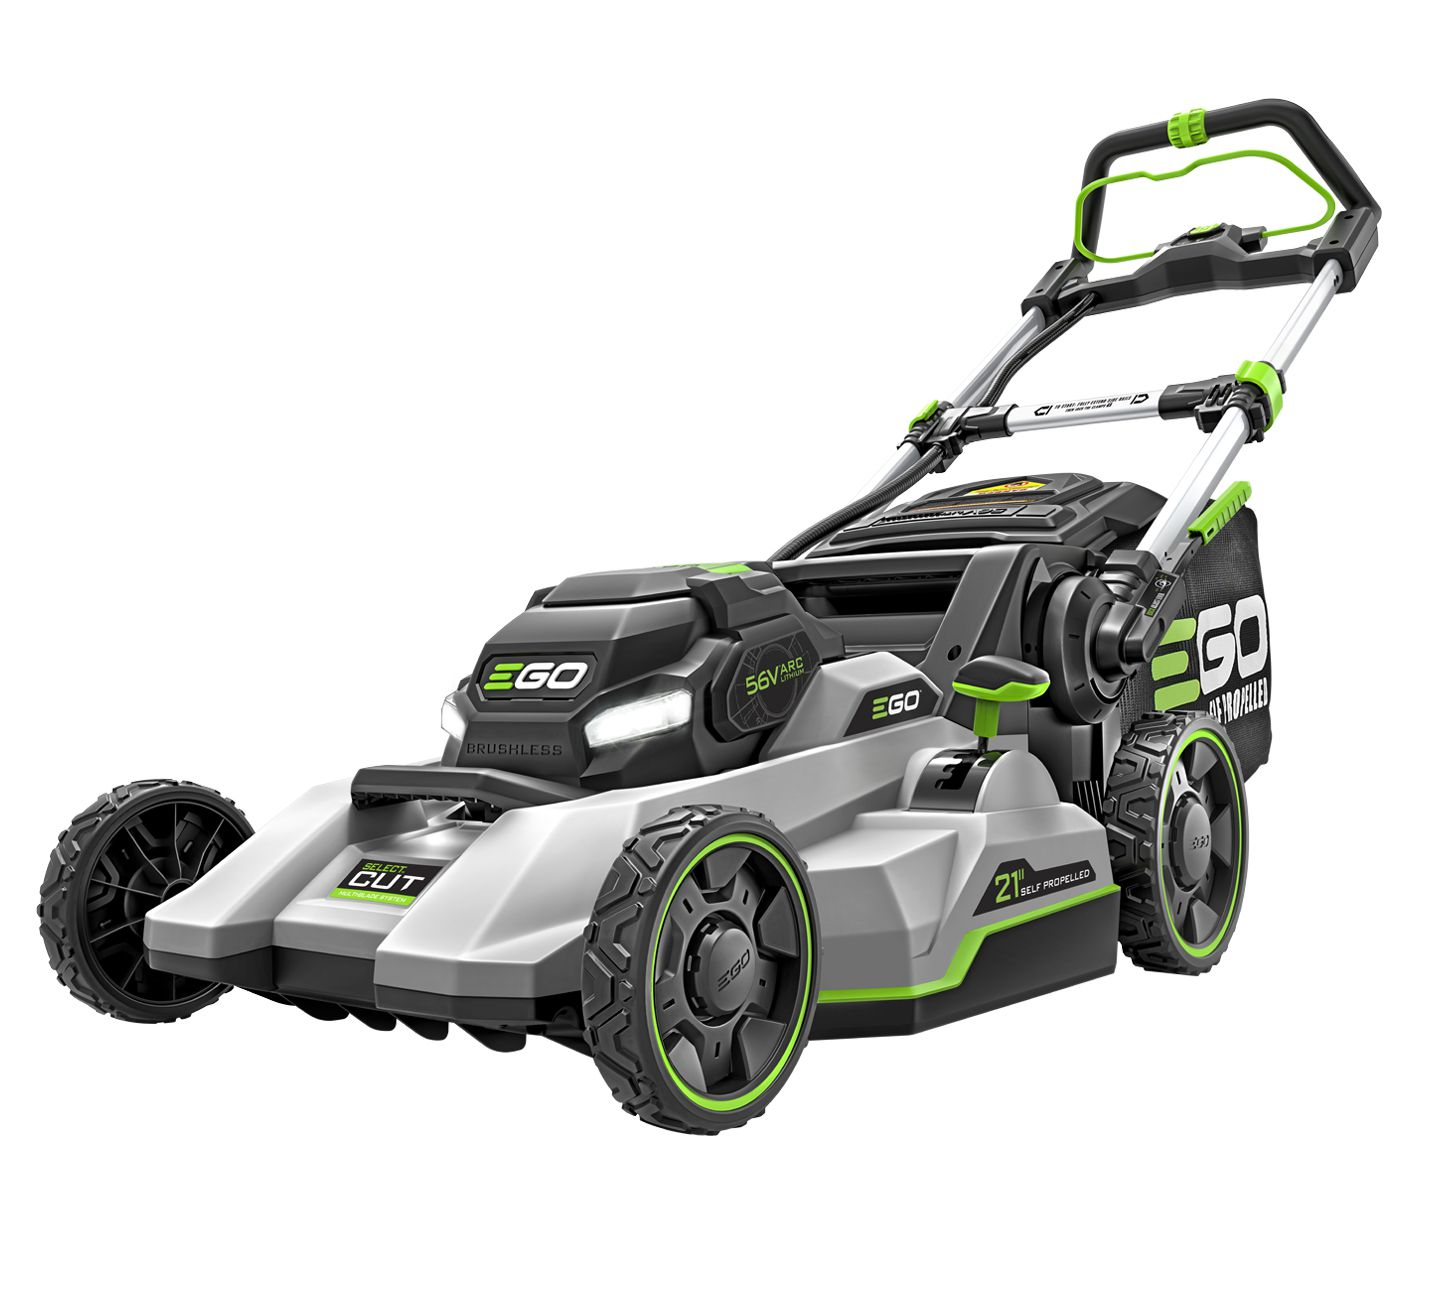 "EGO POWER+ 21"" SELECT CUT MOWER WITH TOUCH DRIVE SELF-PROPELLED TECHNOLOGY"